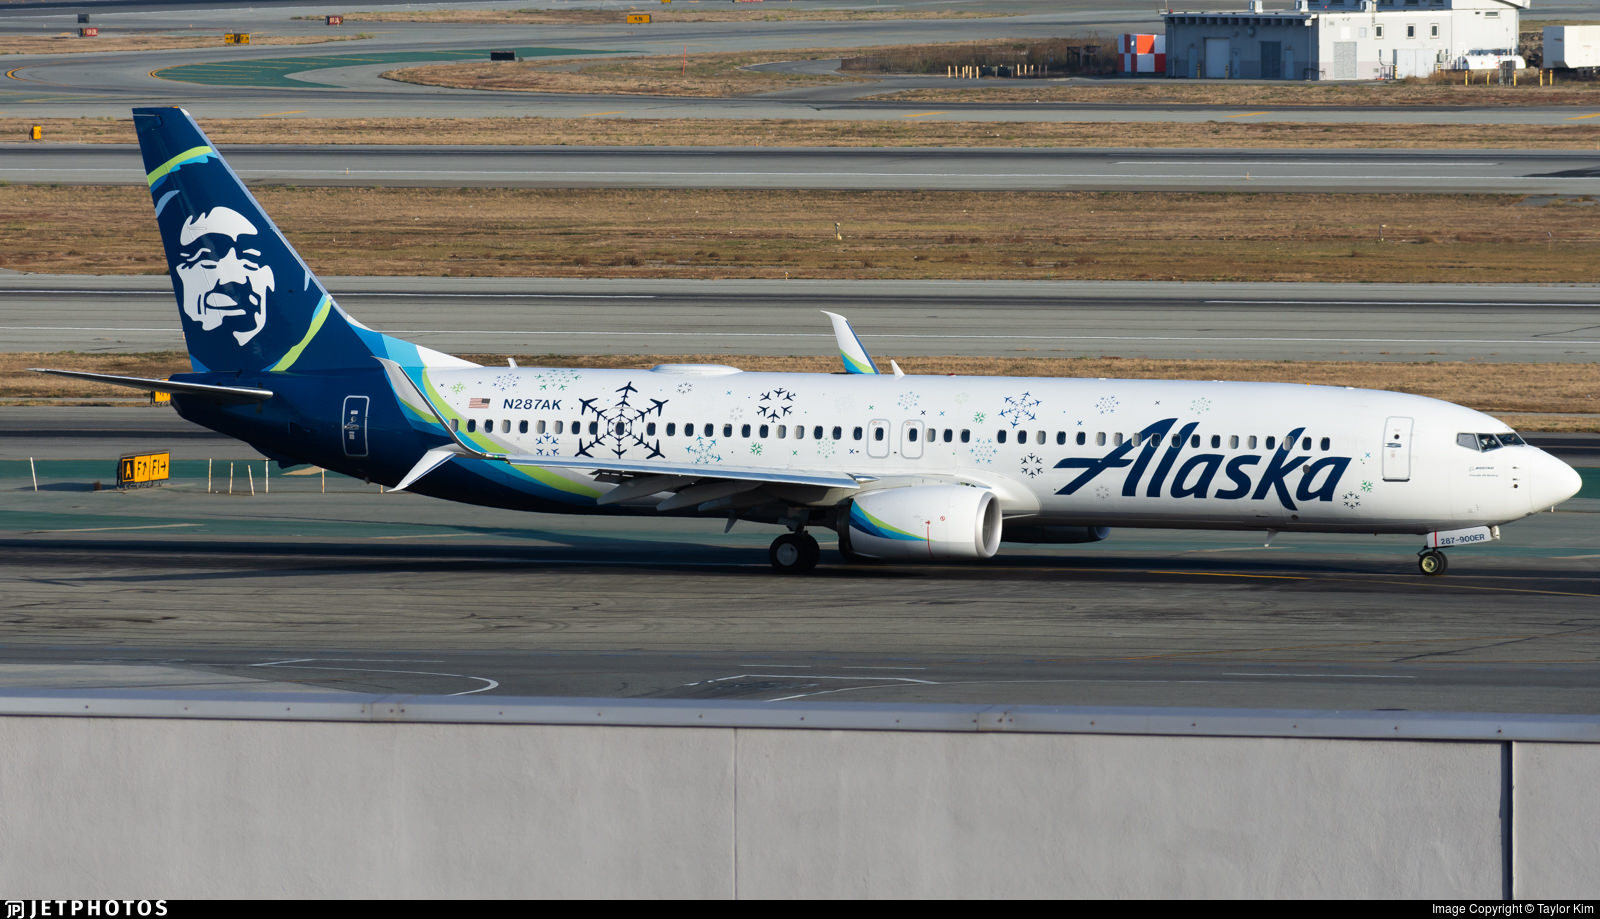 Alaska Airline's new snowflake livery